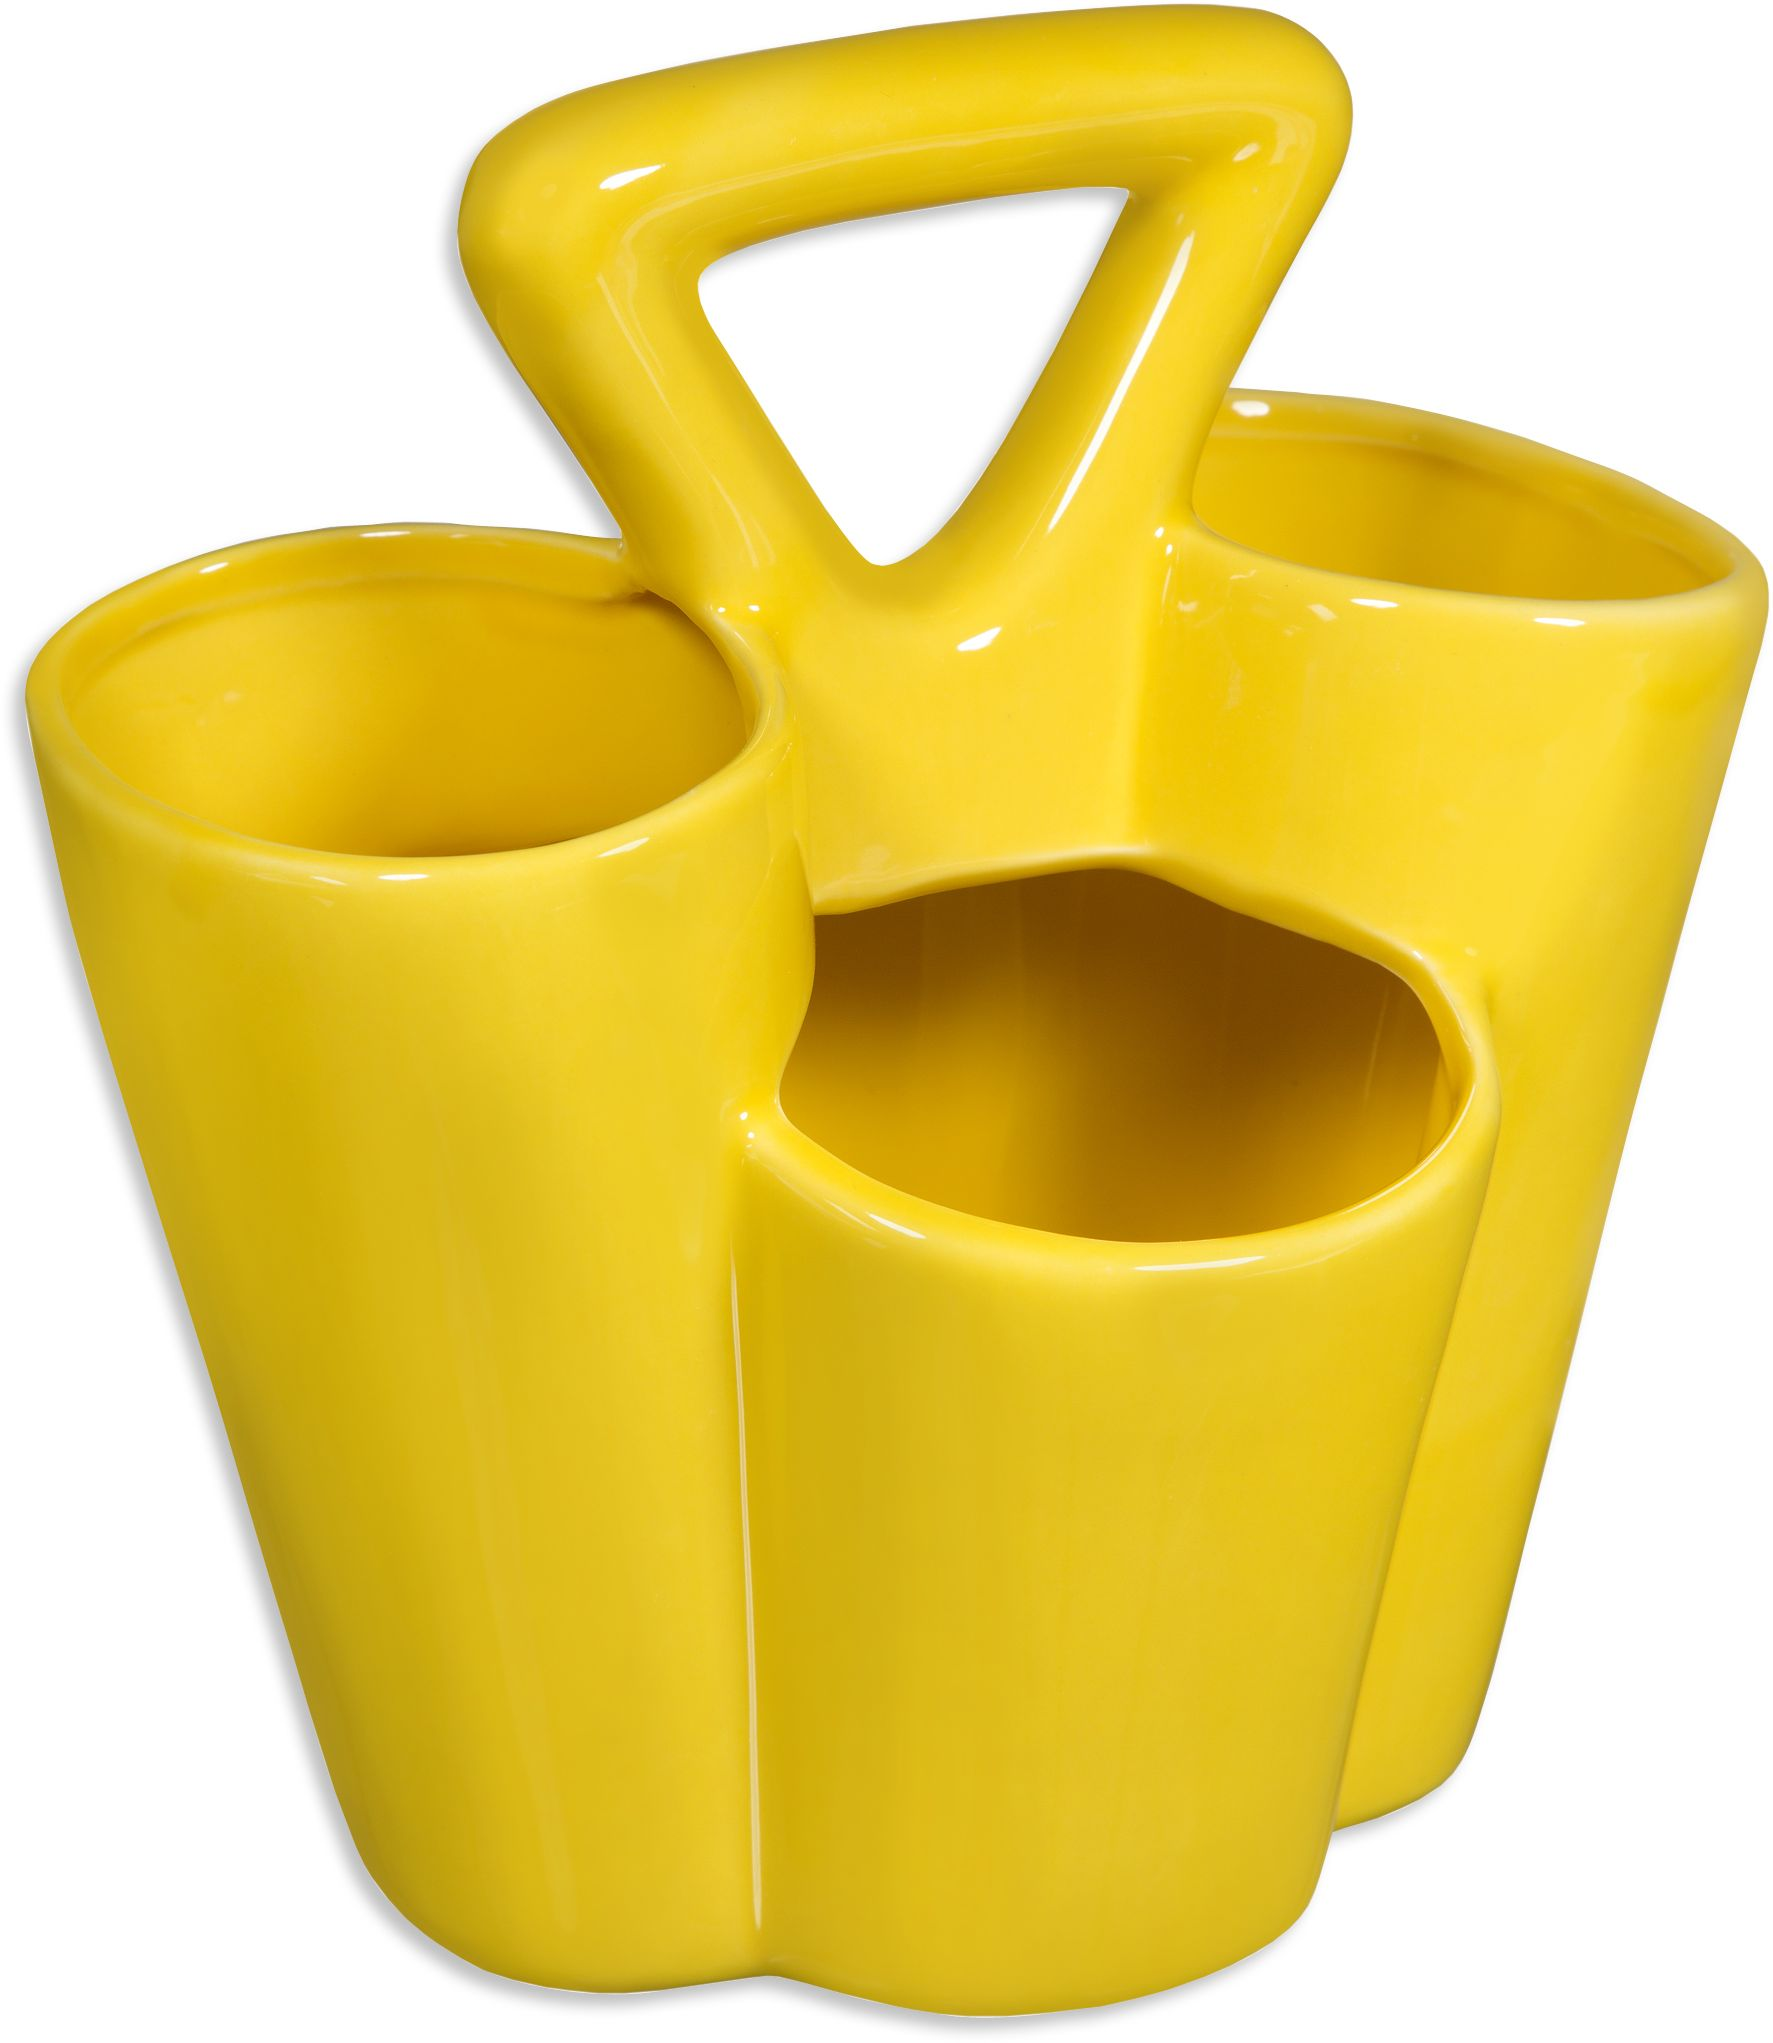 Charming Yellow Ceramics Utensil Caddy For Kitchen Accessories Ideas